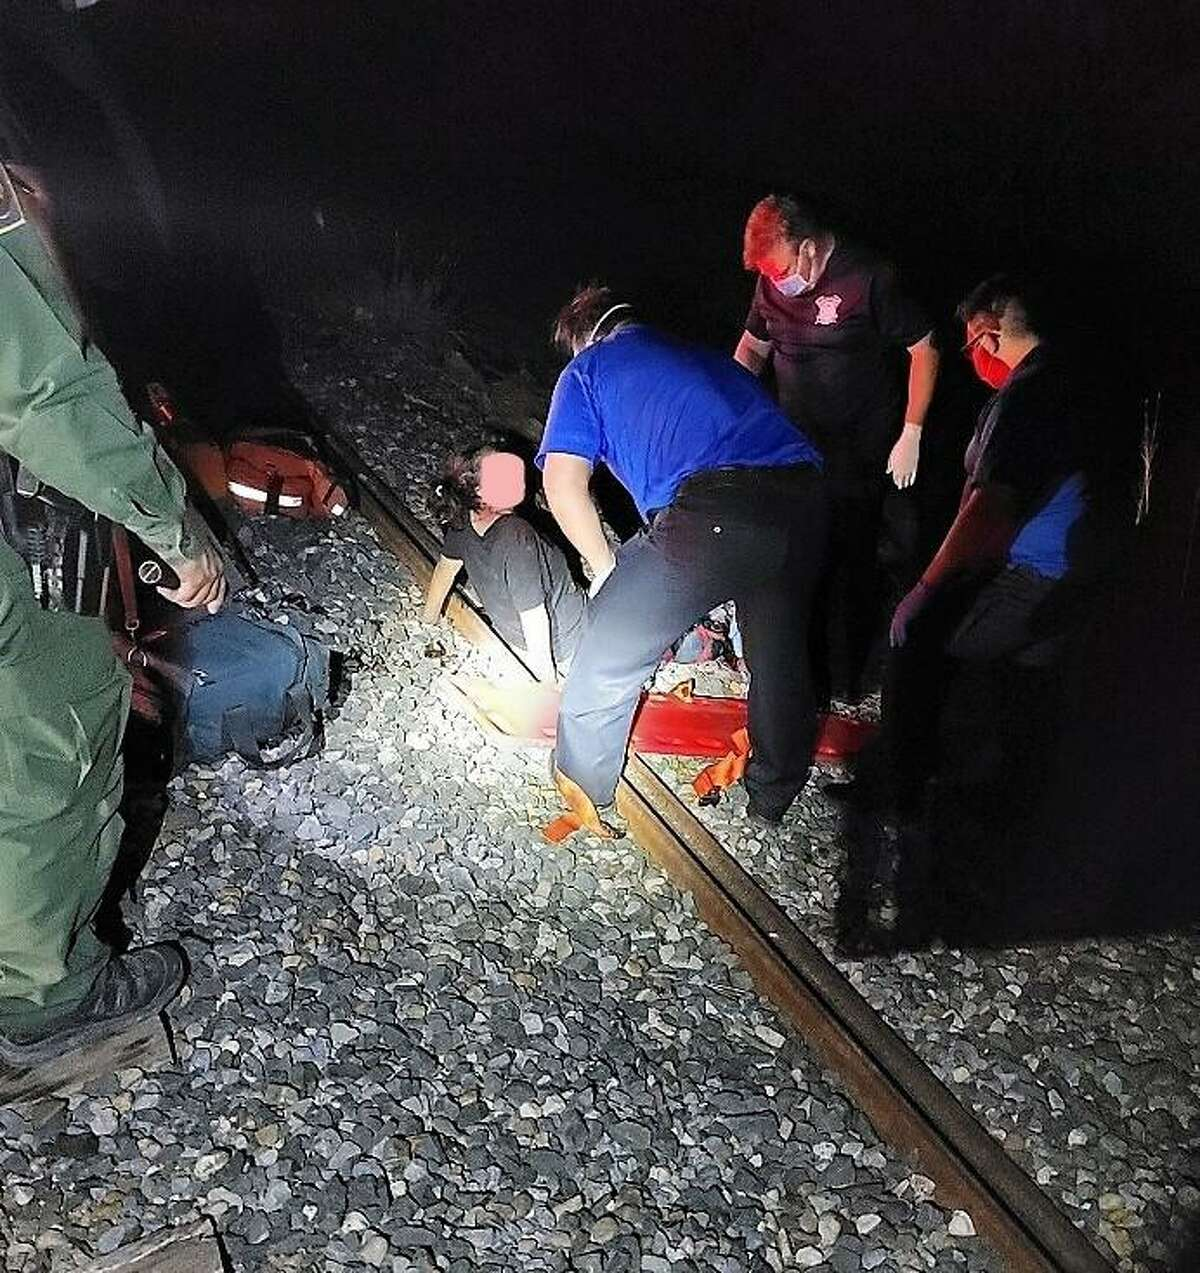 A woman was injured when she tried to get on board a moving train. U.S. Border Patrol said she was determined to be a migrant from Guatemala.